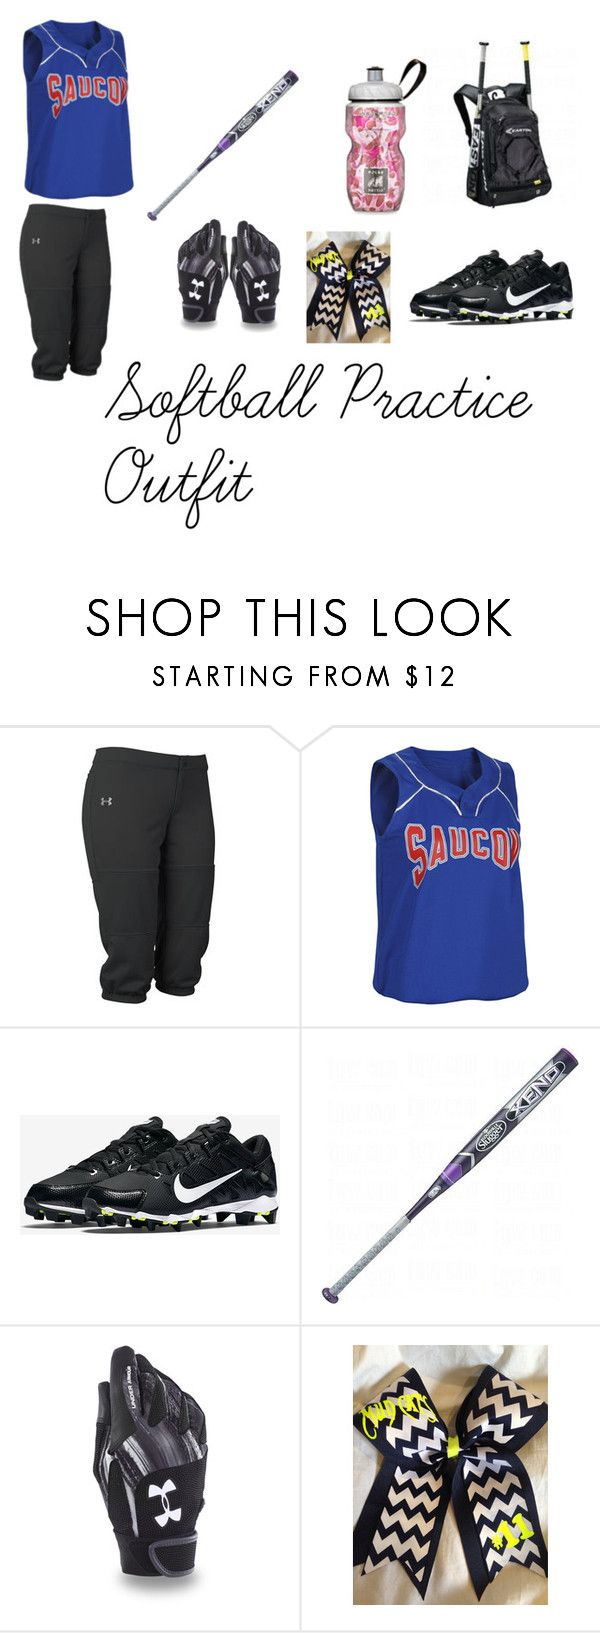 """Softball Practice Outfit"" by softballlover2004 on Polyvore featuring Under Armour, NIKE, Louisville Slugger, women's clothing, women's fashion, women, female, woman, misses and juniors"